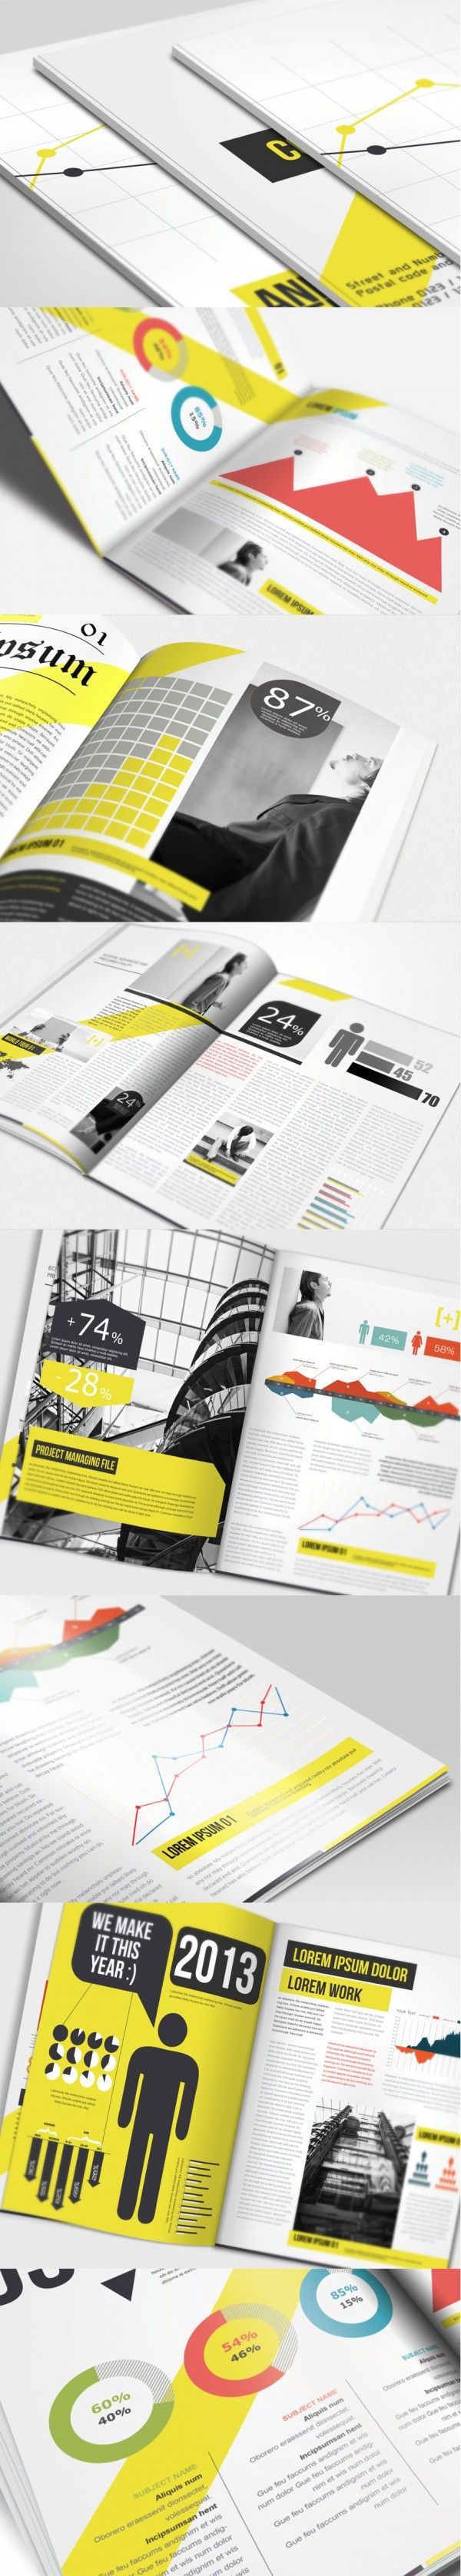 annual report brochure | print design inspiration